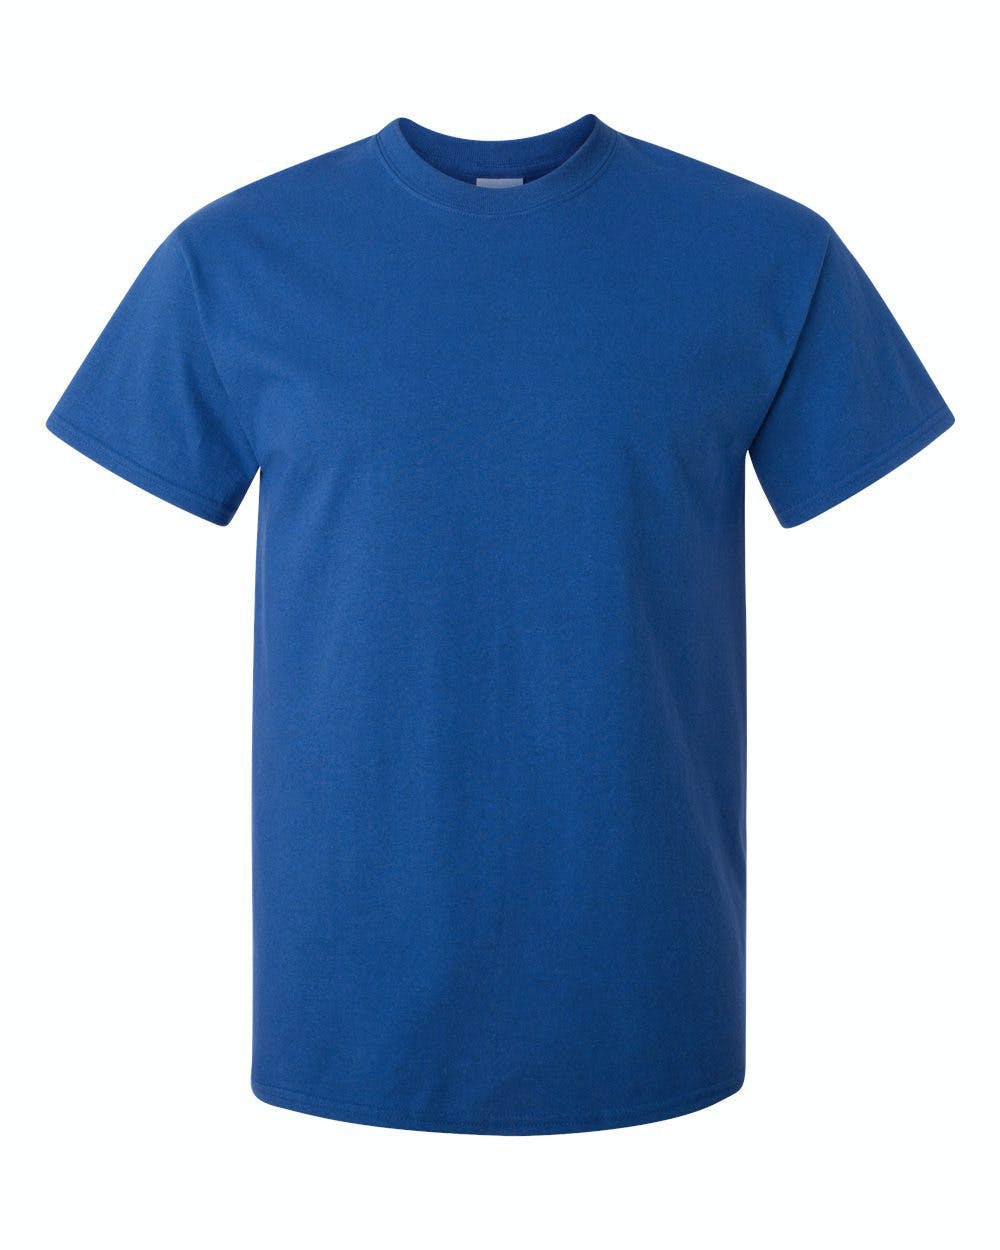 Gildan 2000 Promotional shirt sold by Grandstand Glassware and Apparel